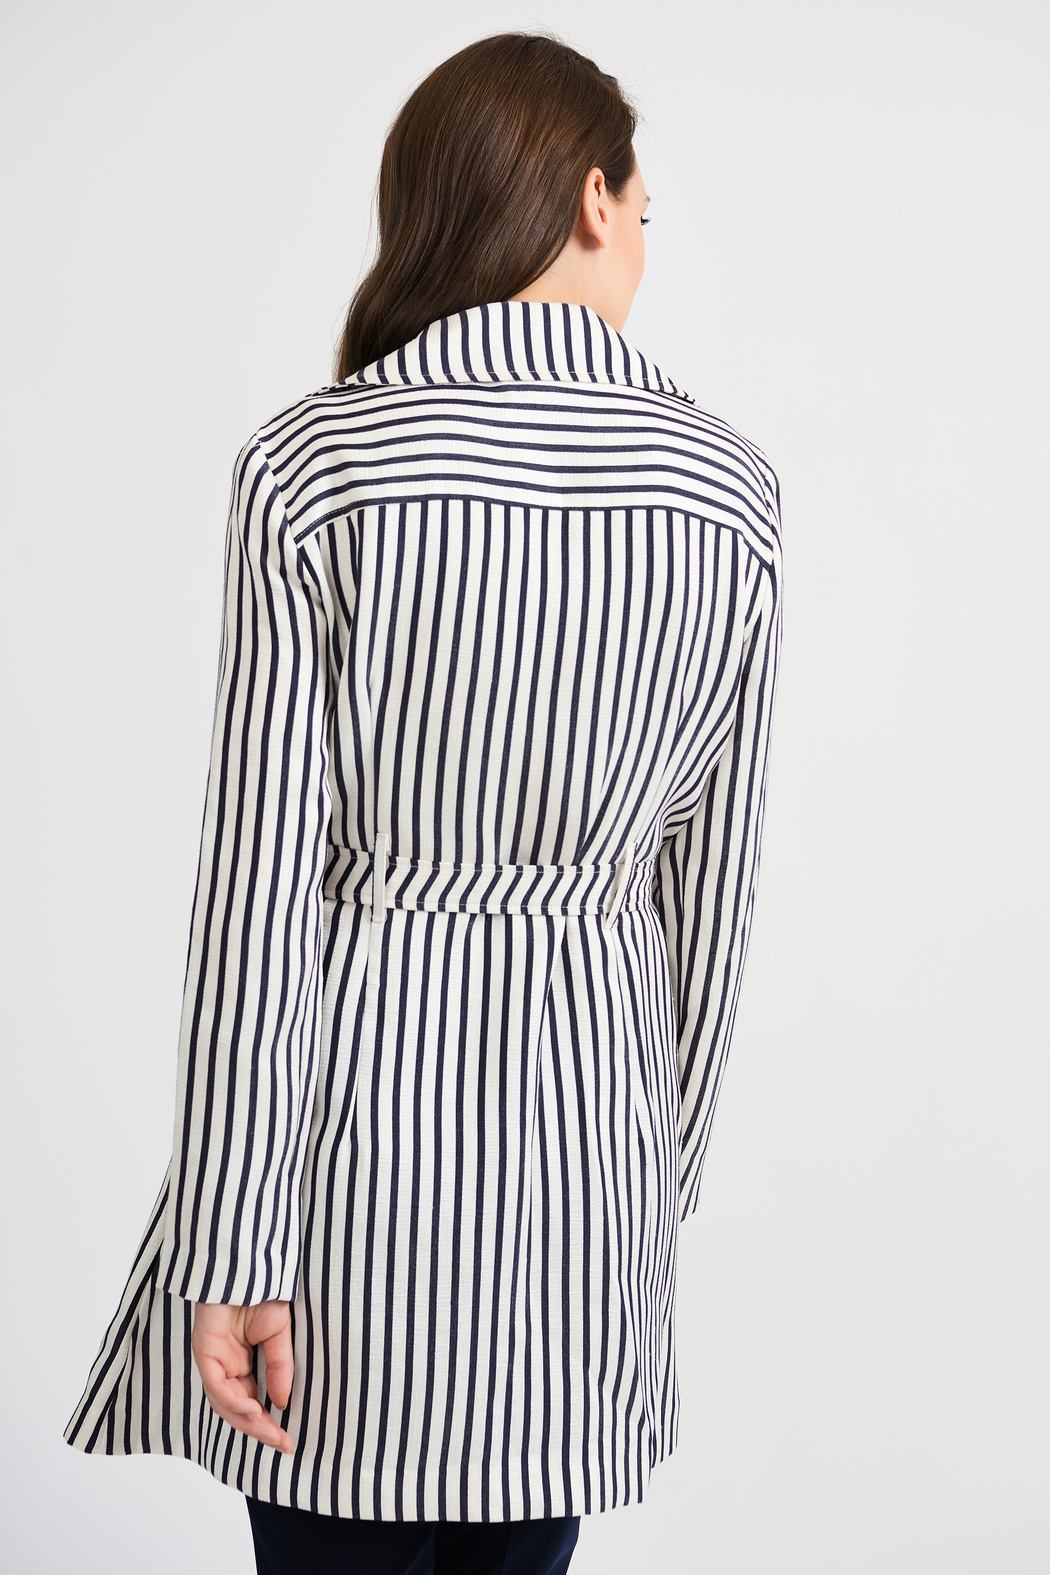 Joseph Ribkoff Classic Striped Tench Jacket, Nave/Offwhite - Side Cropped Image